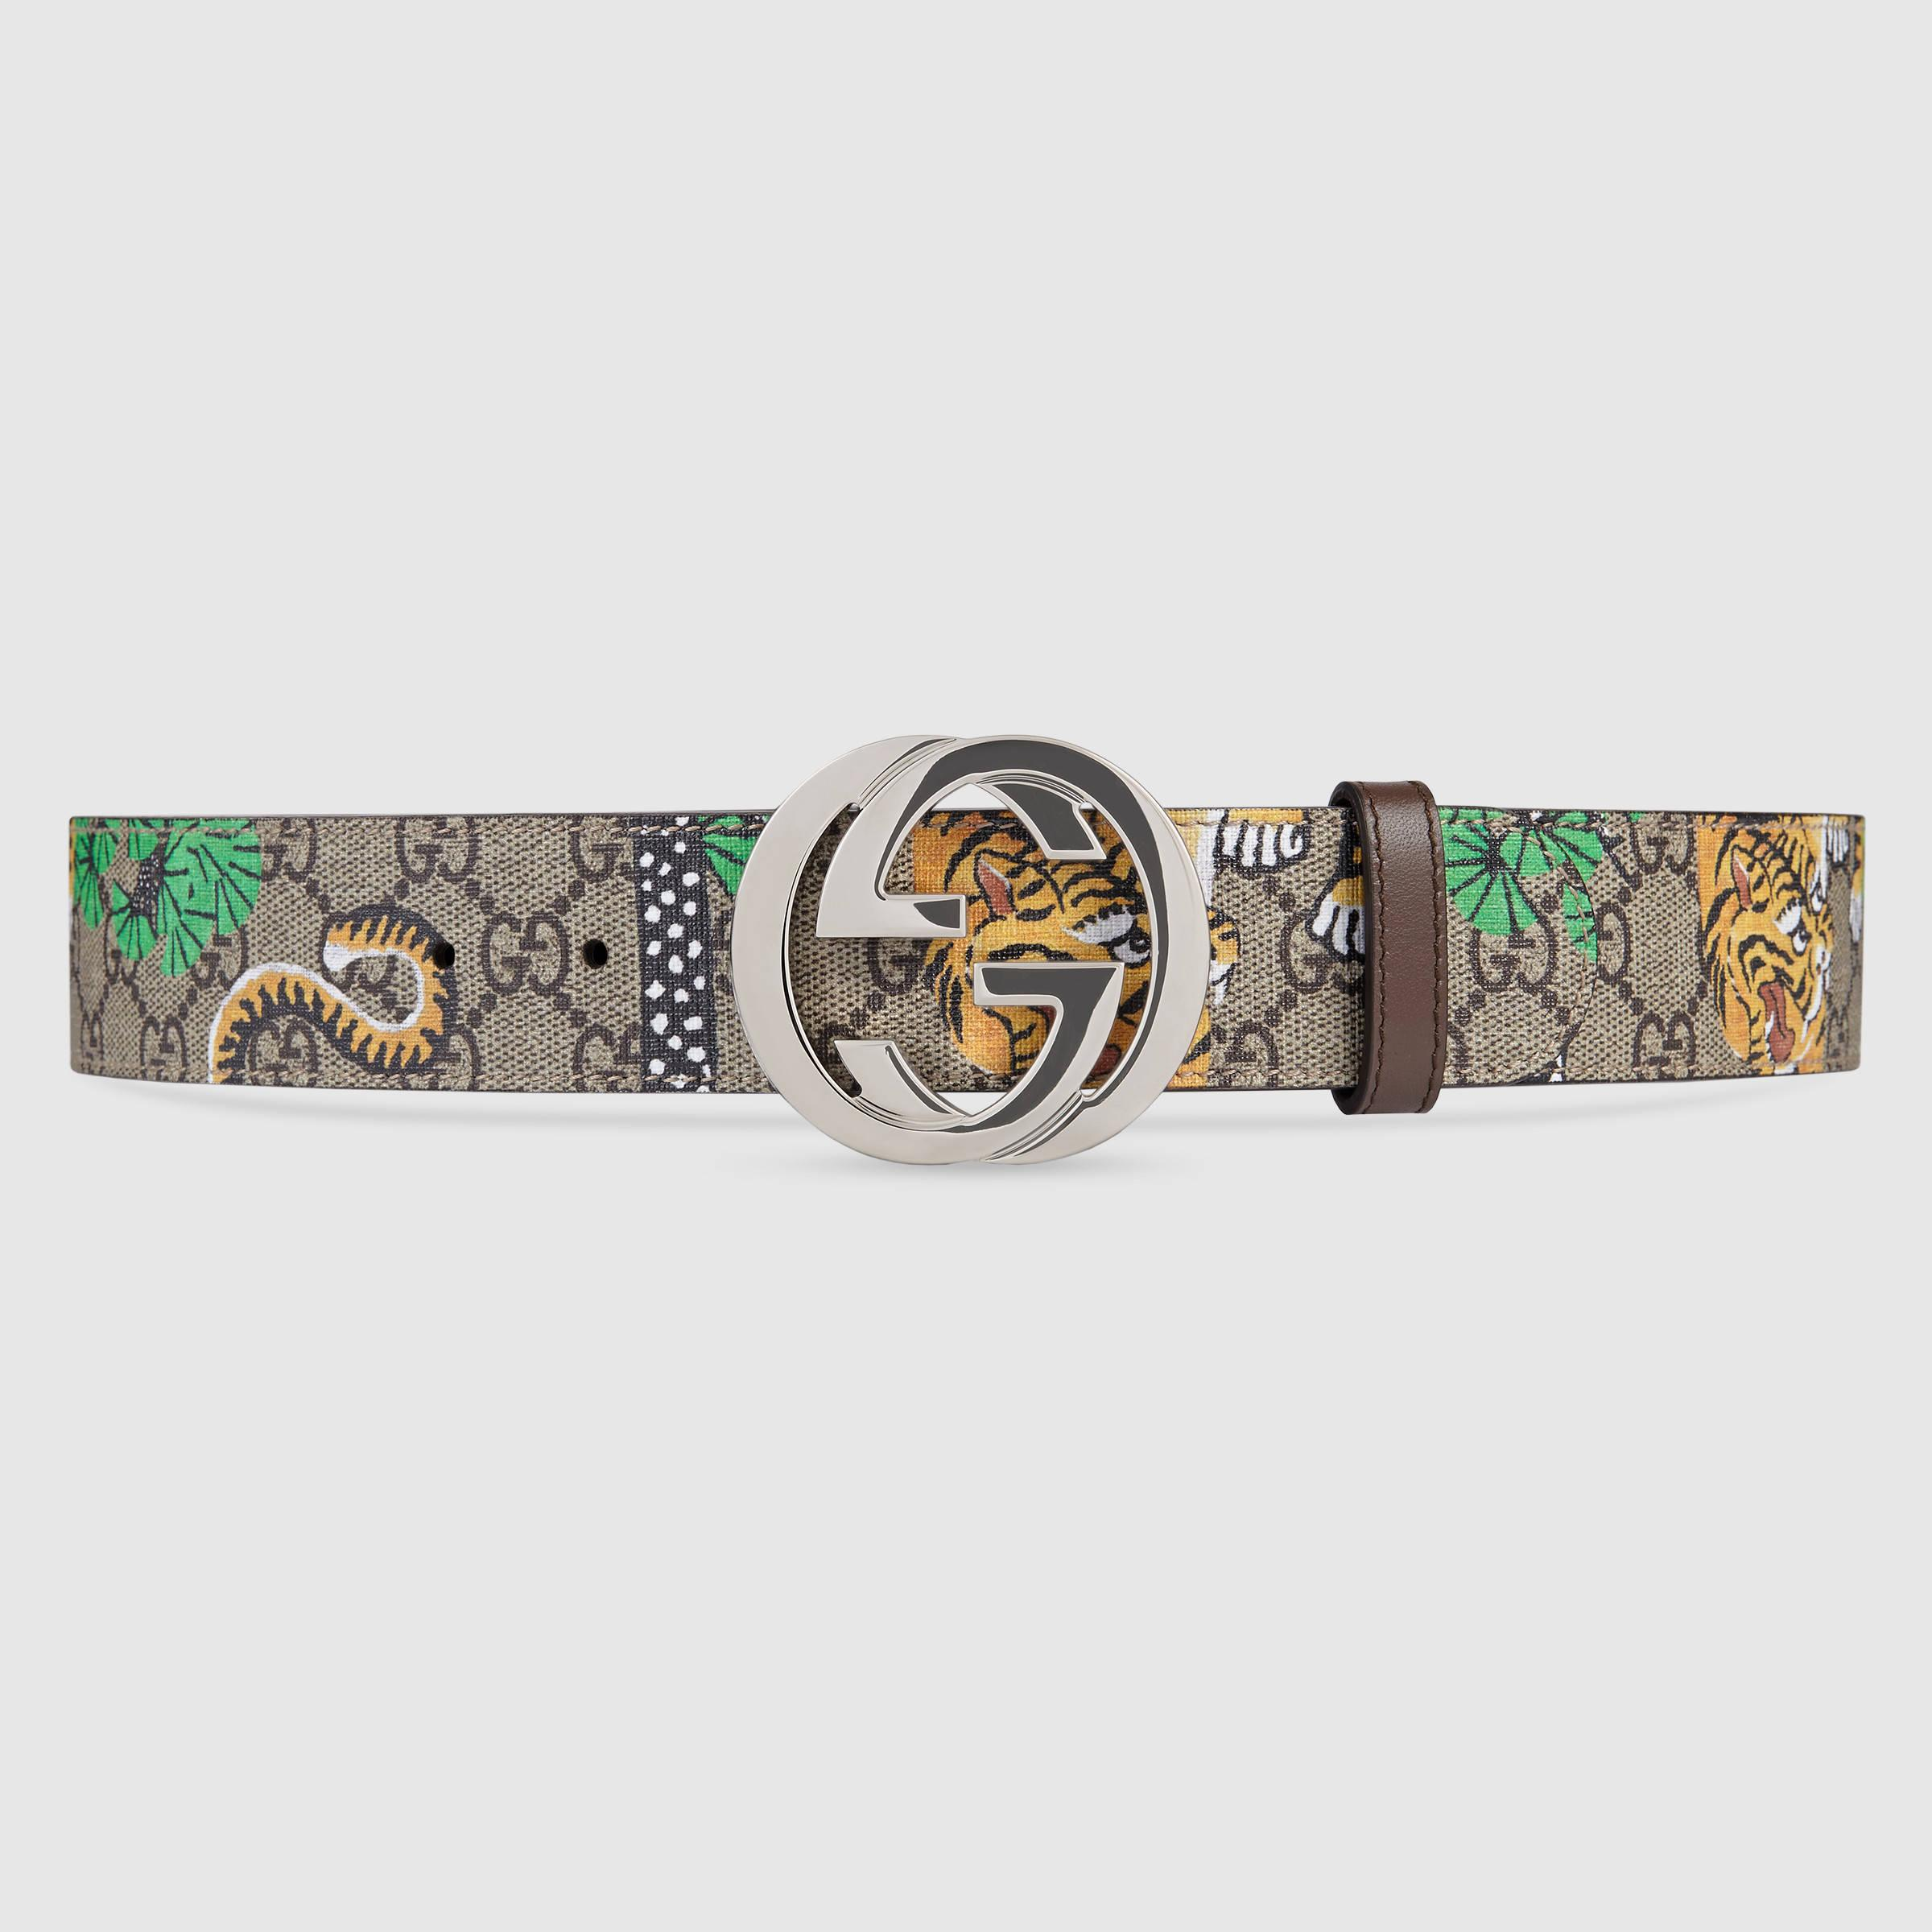 d47ebdc03 Gucci Bengal Gg Supreme Belt in Metallic for Men - Lyst